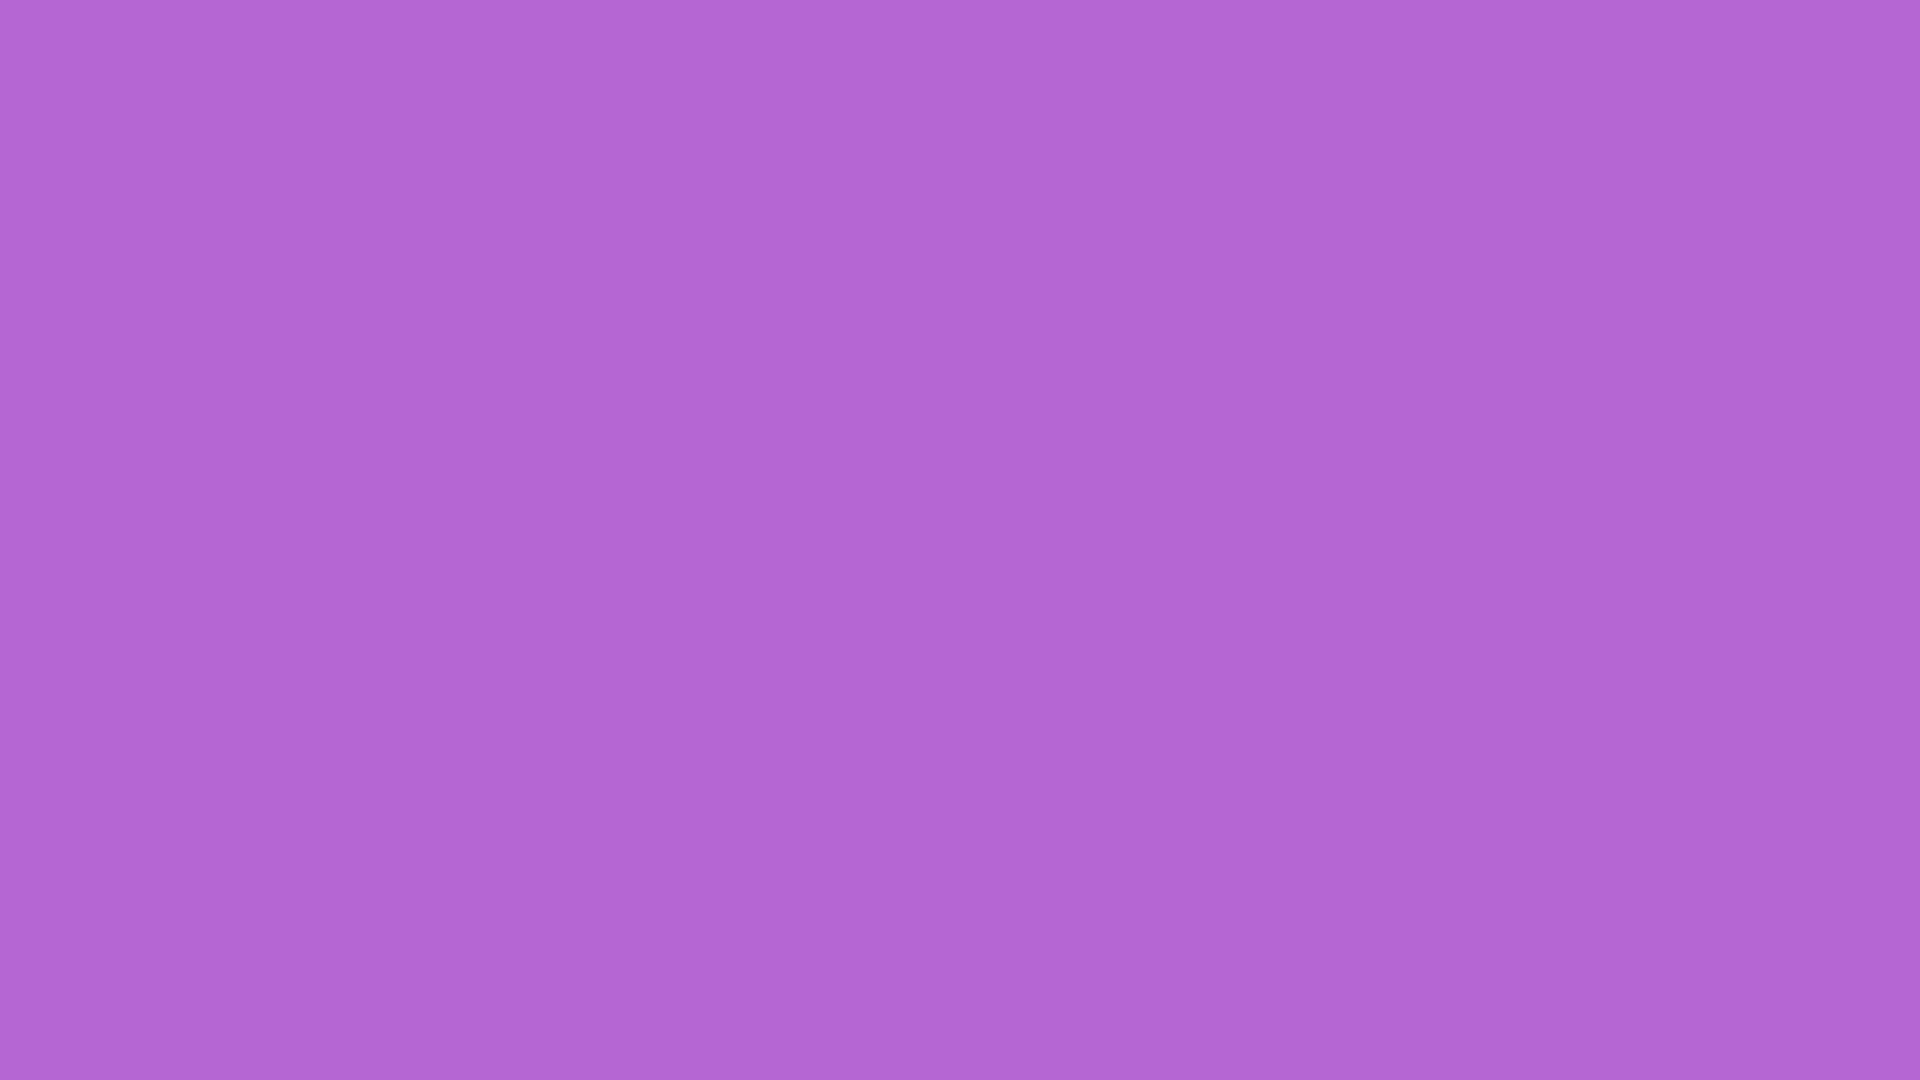 1920x1080 Rich Lilac Solid Color Background